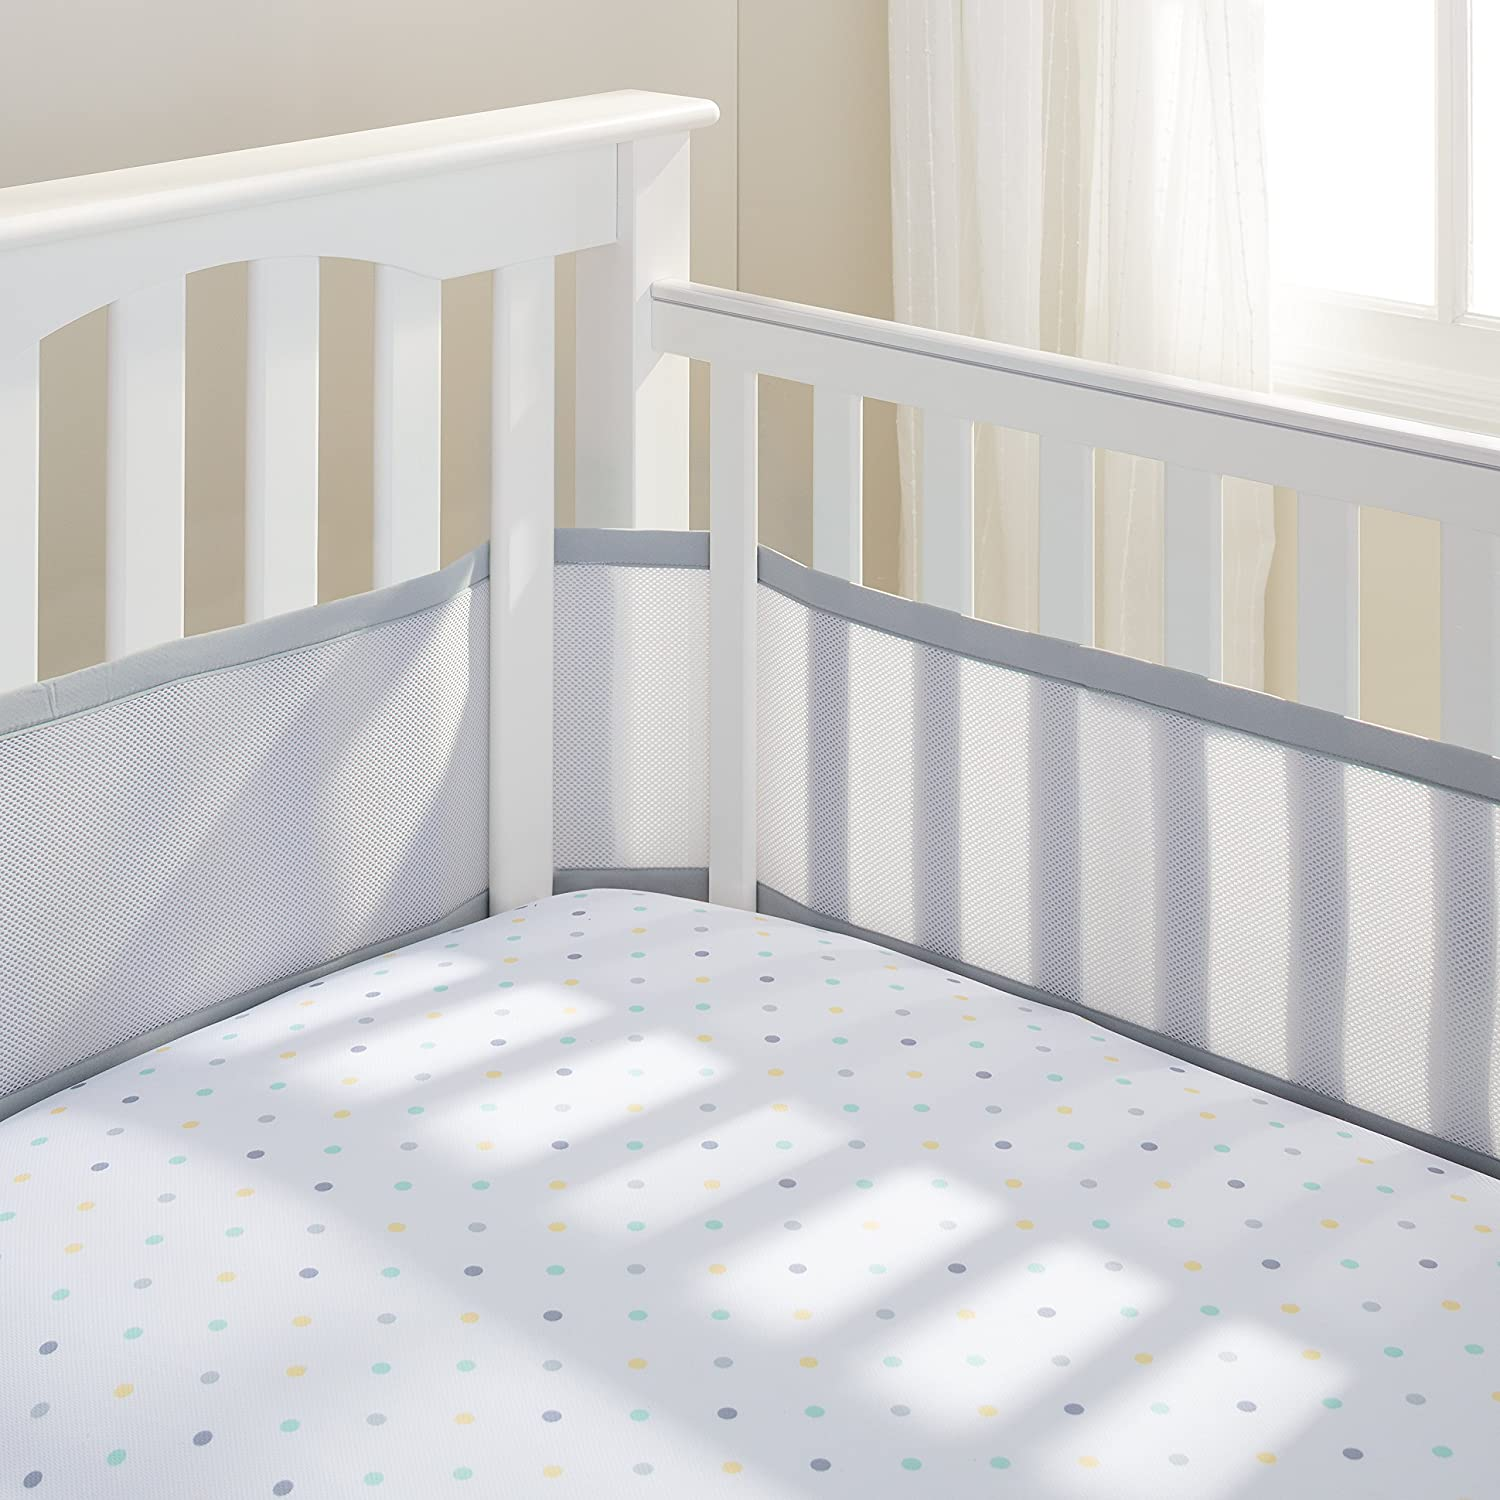 safe solpool company and bumper white full vertical crib girl cribs bar cot grey baby dangerous pattern safety networks navy padding size bedding have list must pink orange liner set the black side breathable bumpers pads percale quilt of plain gray